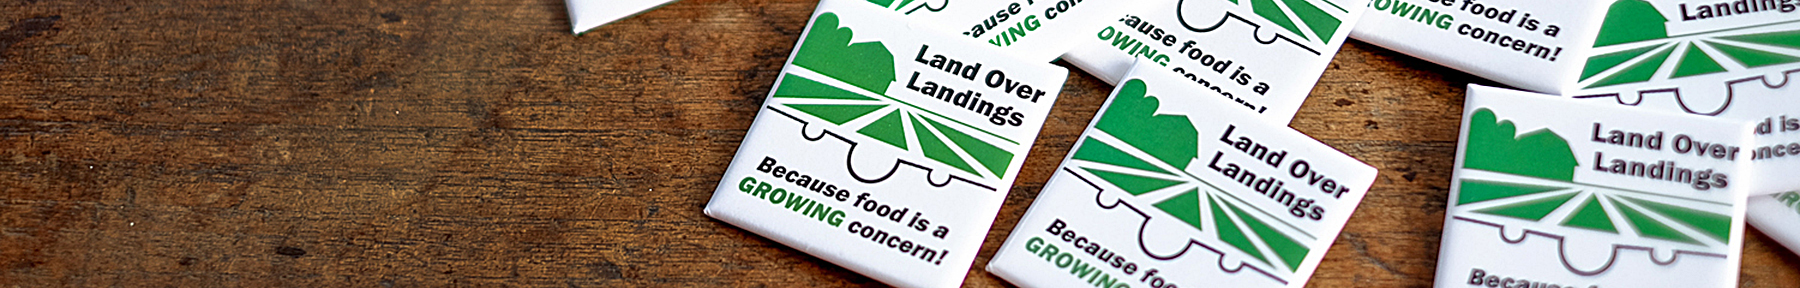 pins with Land Over Landings logo